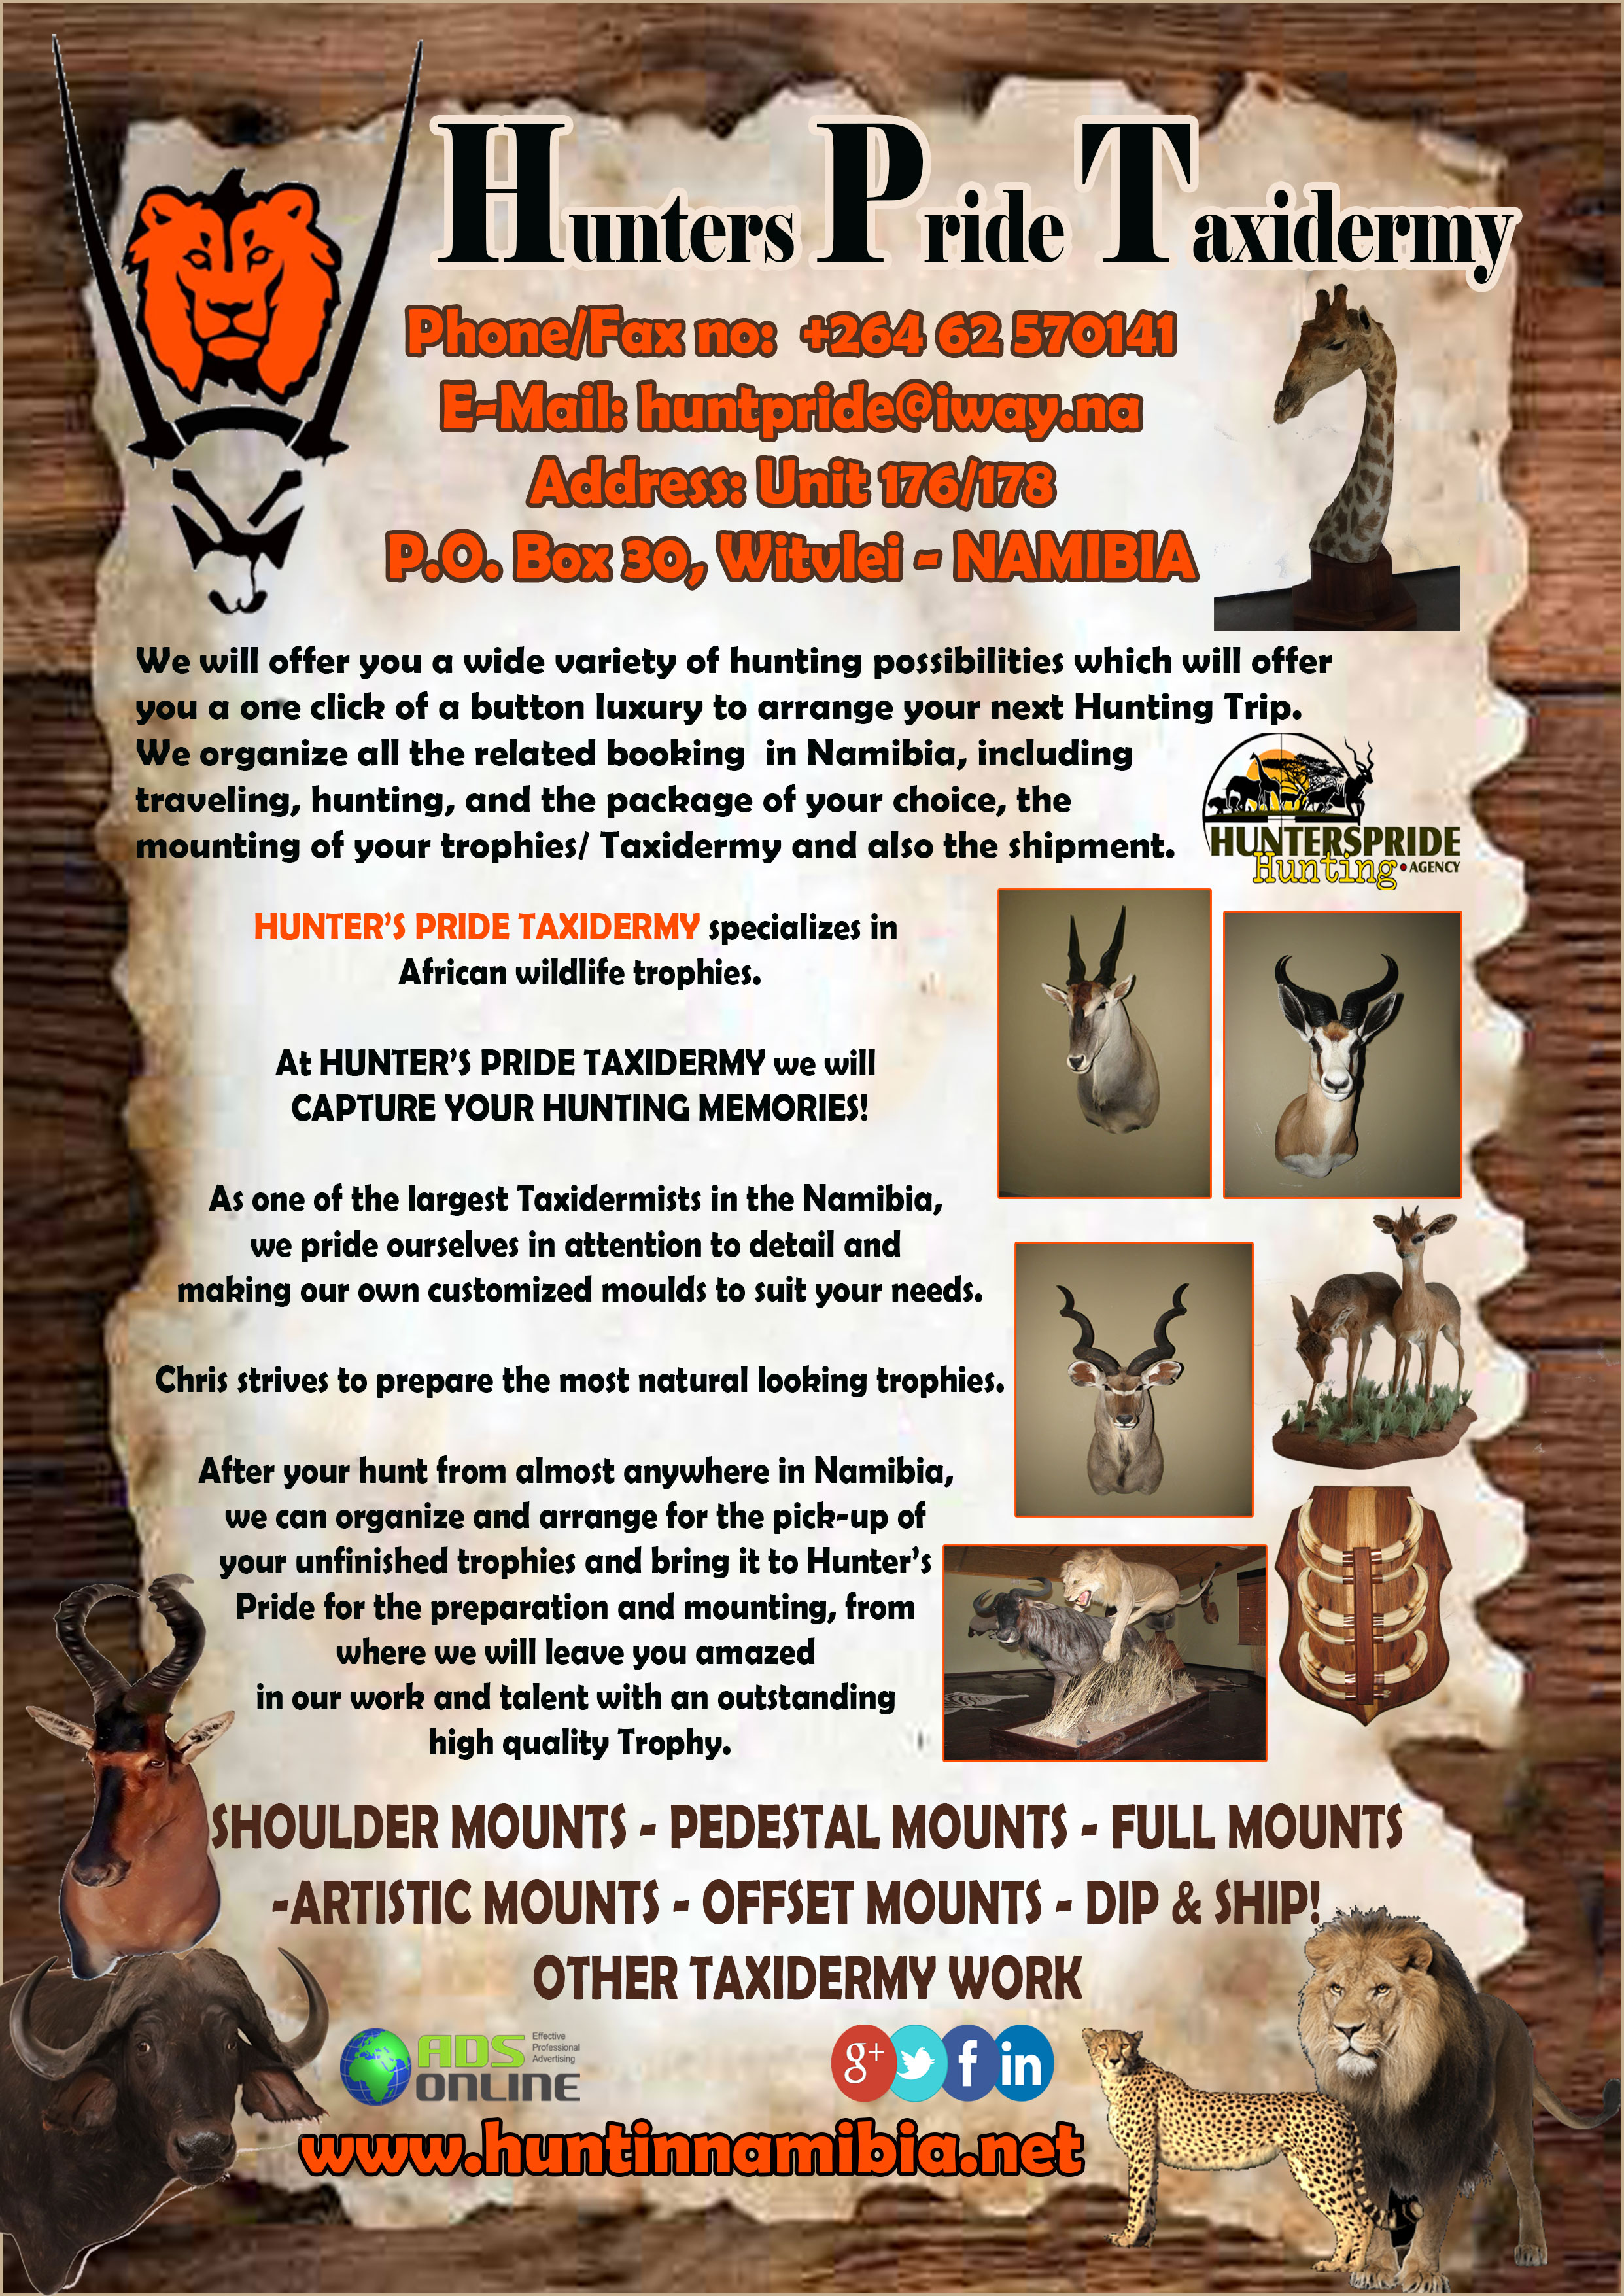 Hunters Pride Taxidermy | Namibia – Taxidermists in Namibia